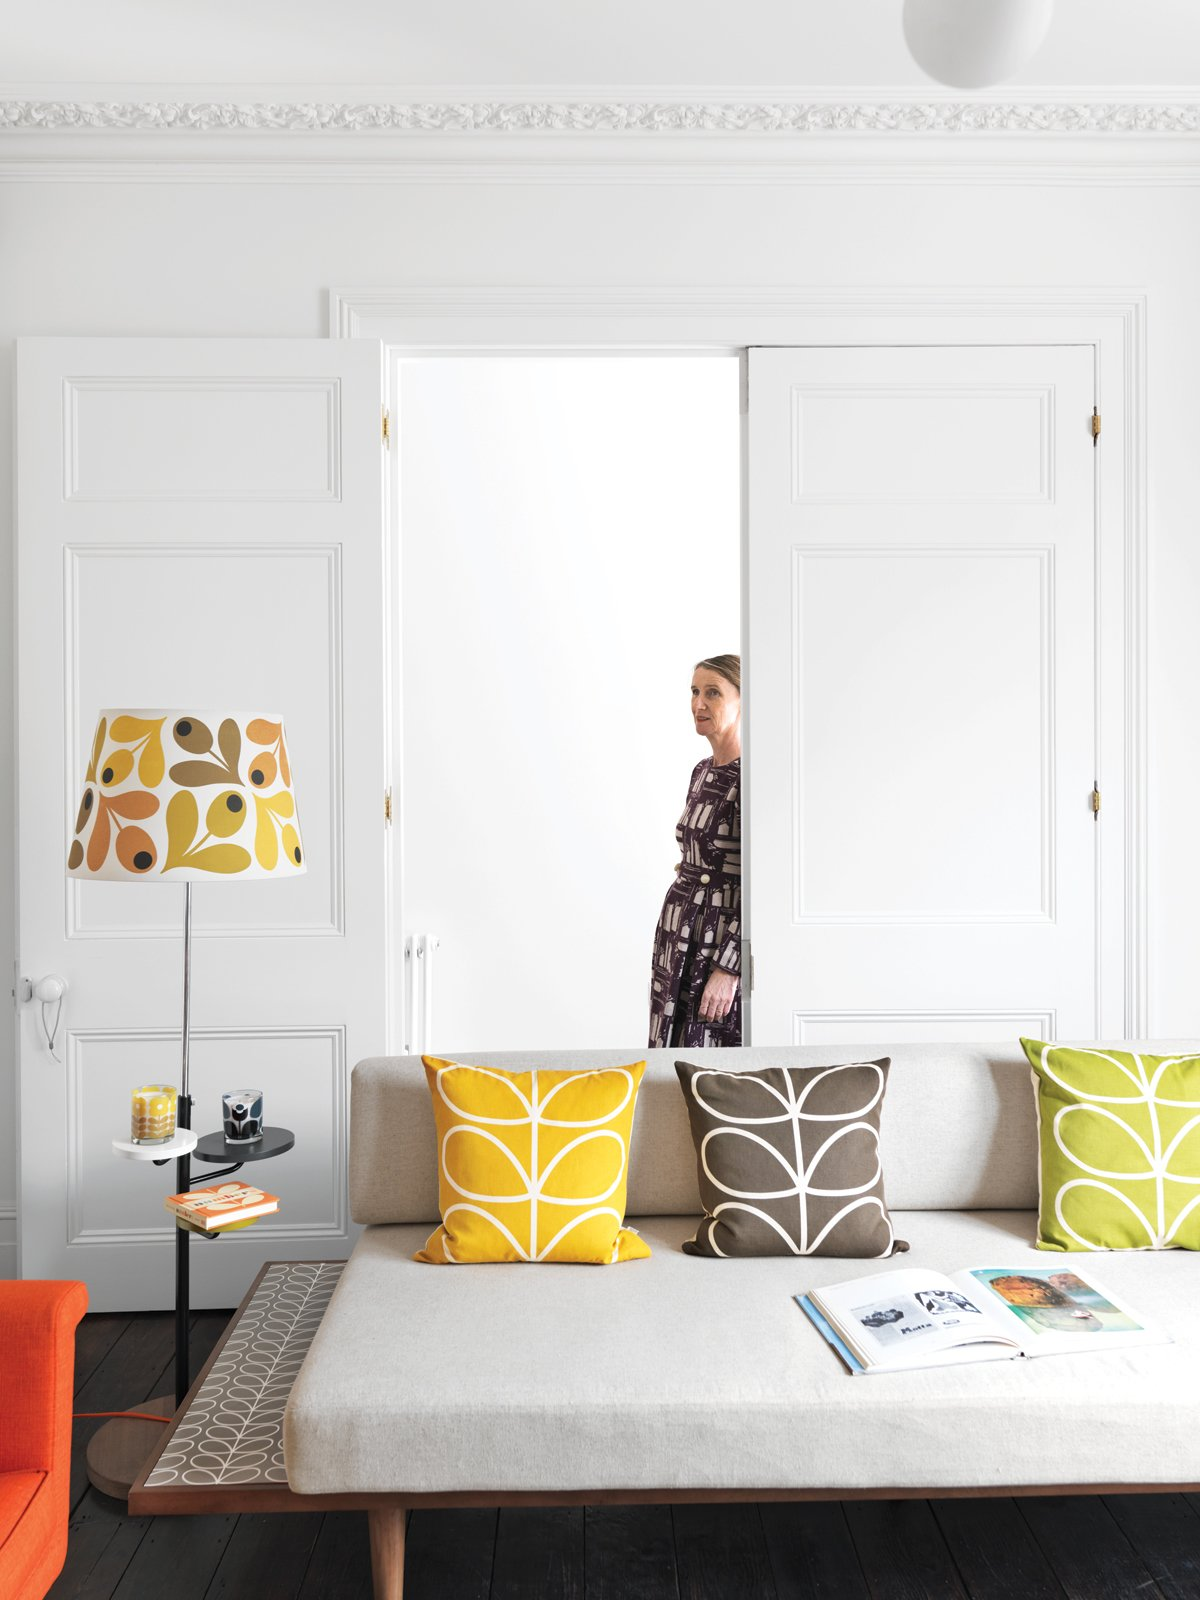 A Textile Designer\'s Home Is Unapologetically Colorful - Dwell